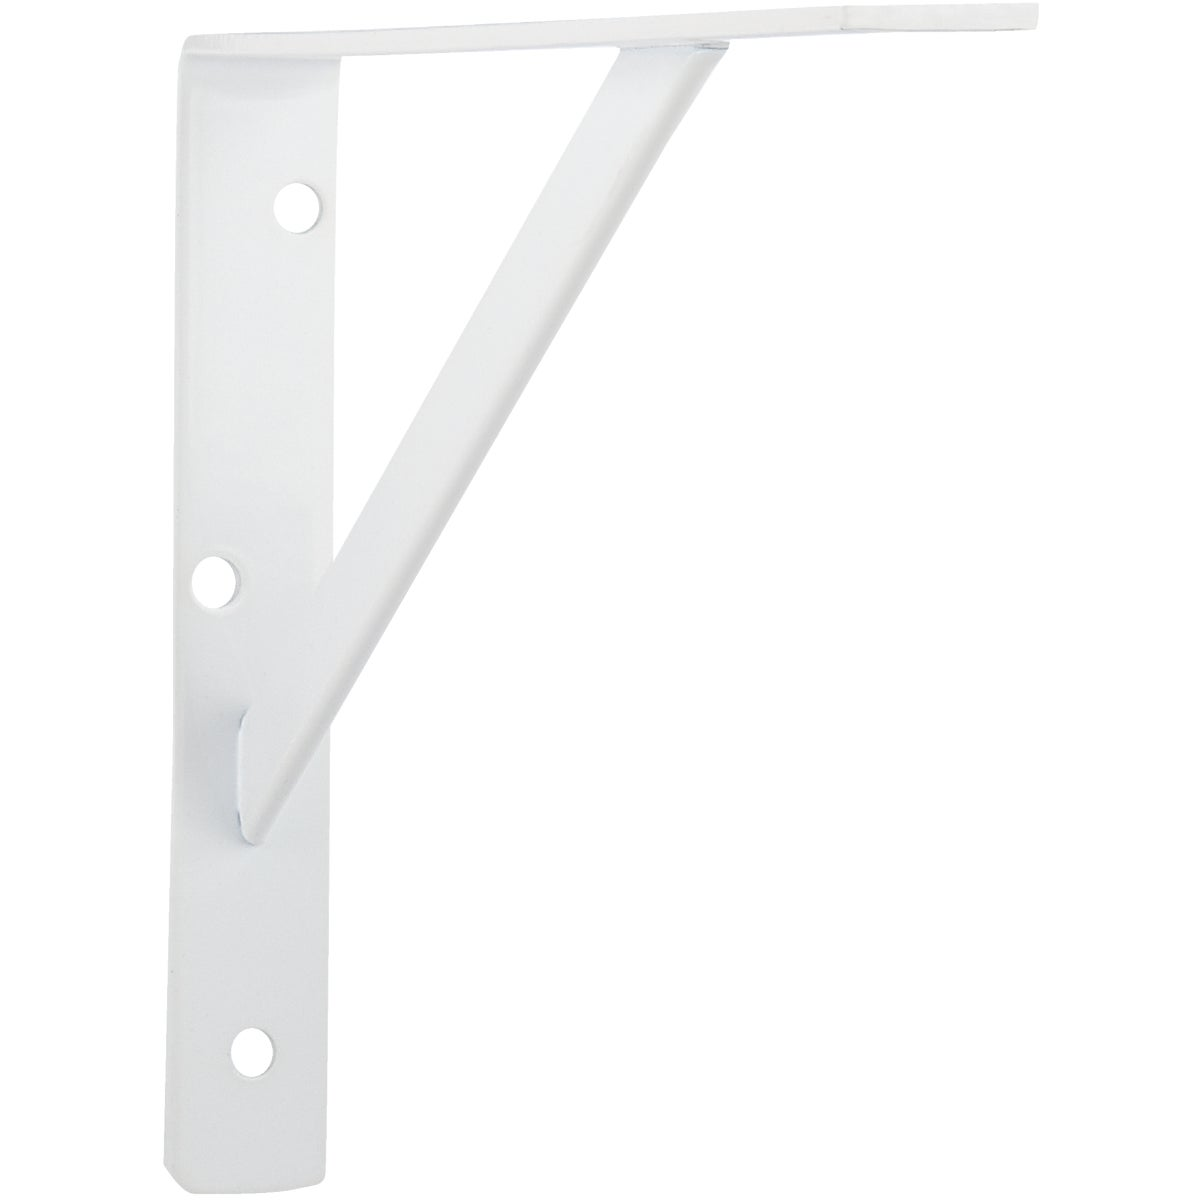 "12"" WHITE BRACKET - 208WH300 by Knape & Vogt Mfg Co"